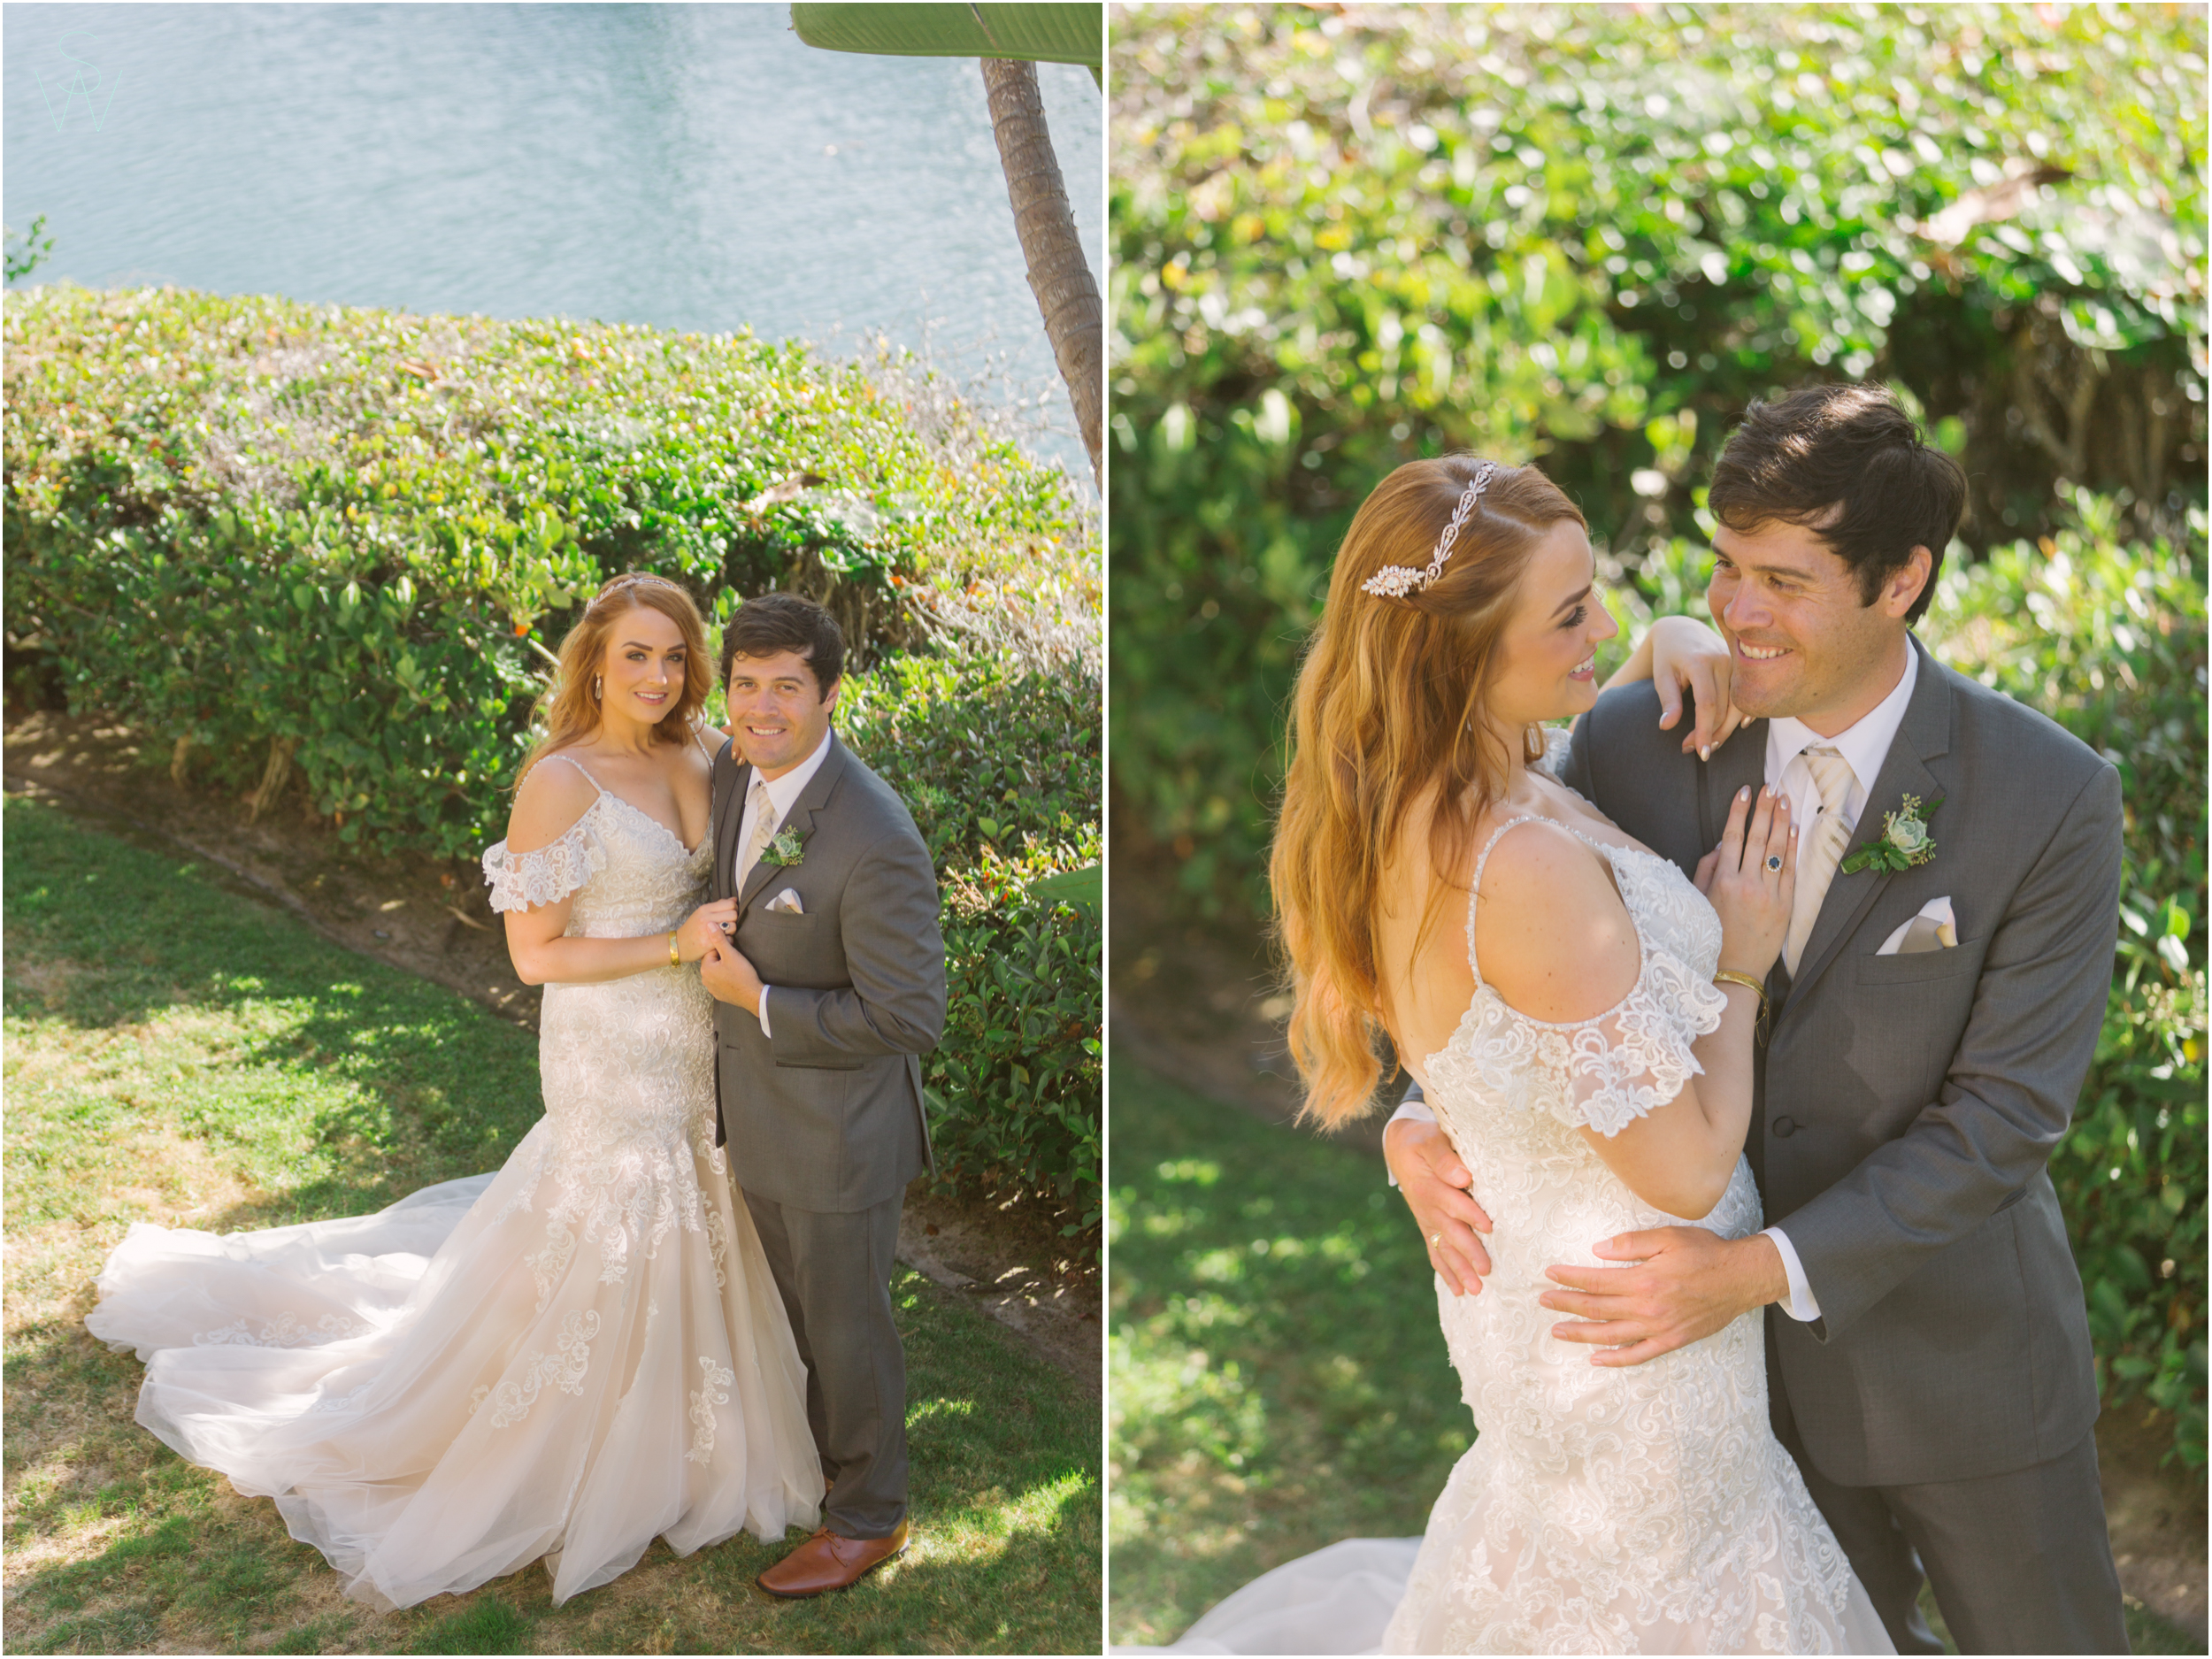 130San.diego.wedding.shewanders.photography.JPG